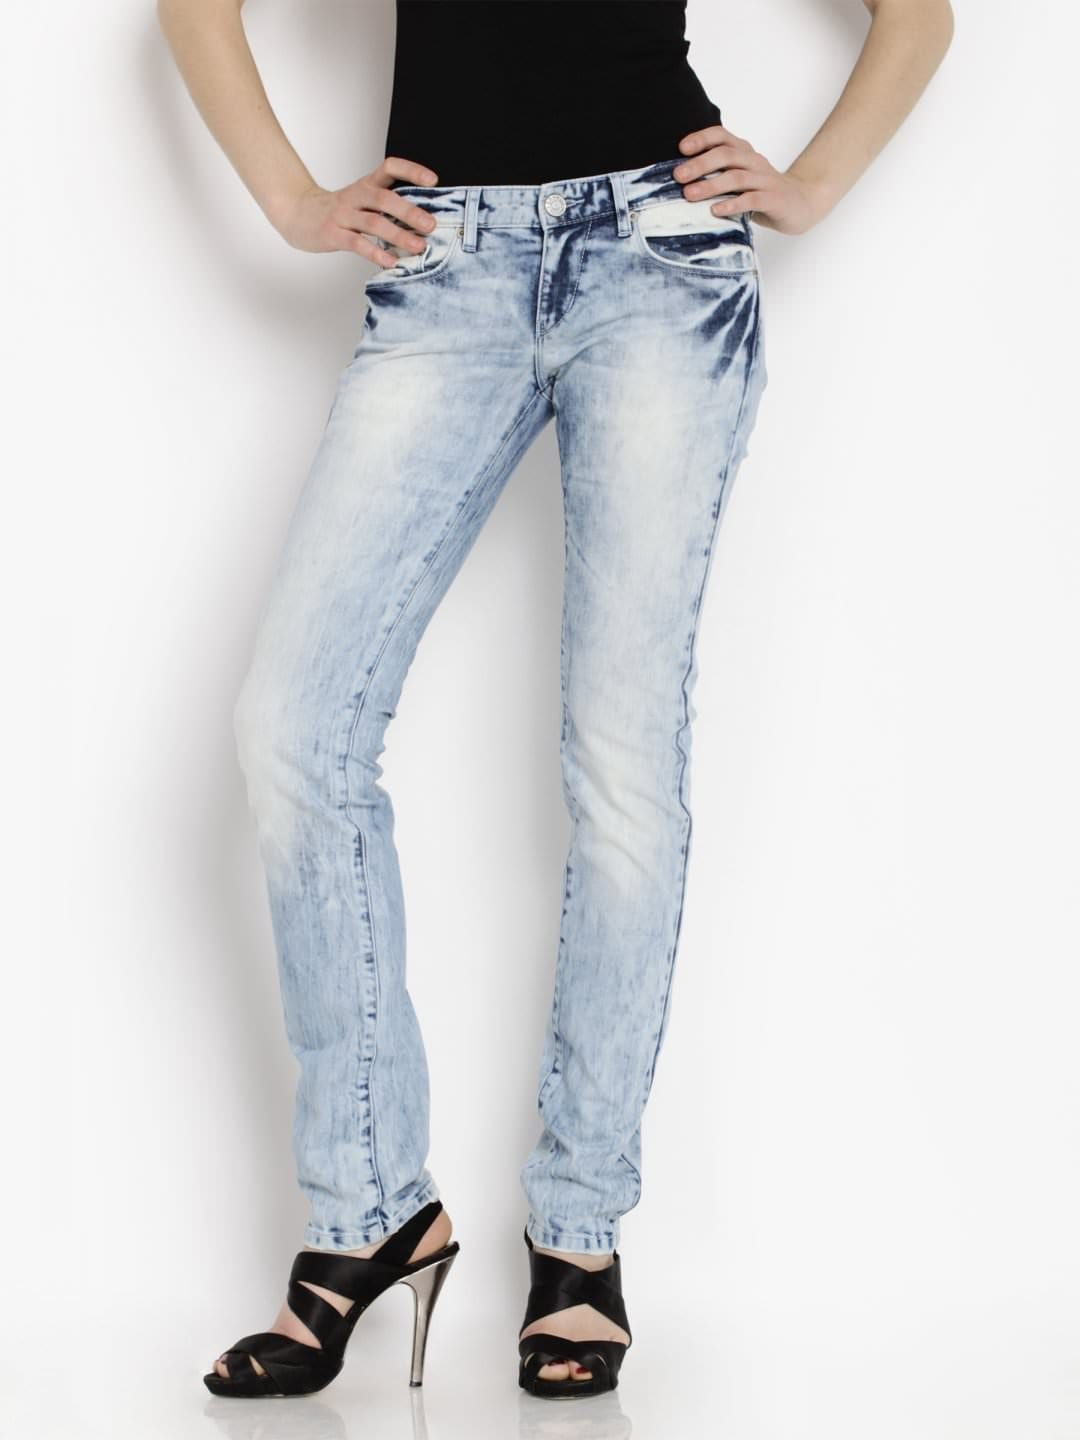 4 Lee Jeans. I would like very passionate looking jeans in leading jeans brands Very best fit for chubby guys Probably it was very fast reach to latest trends guys as well as girls.